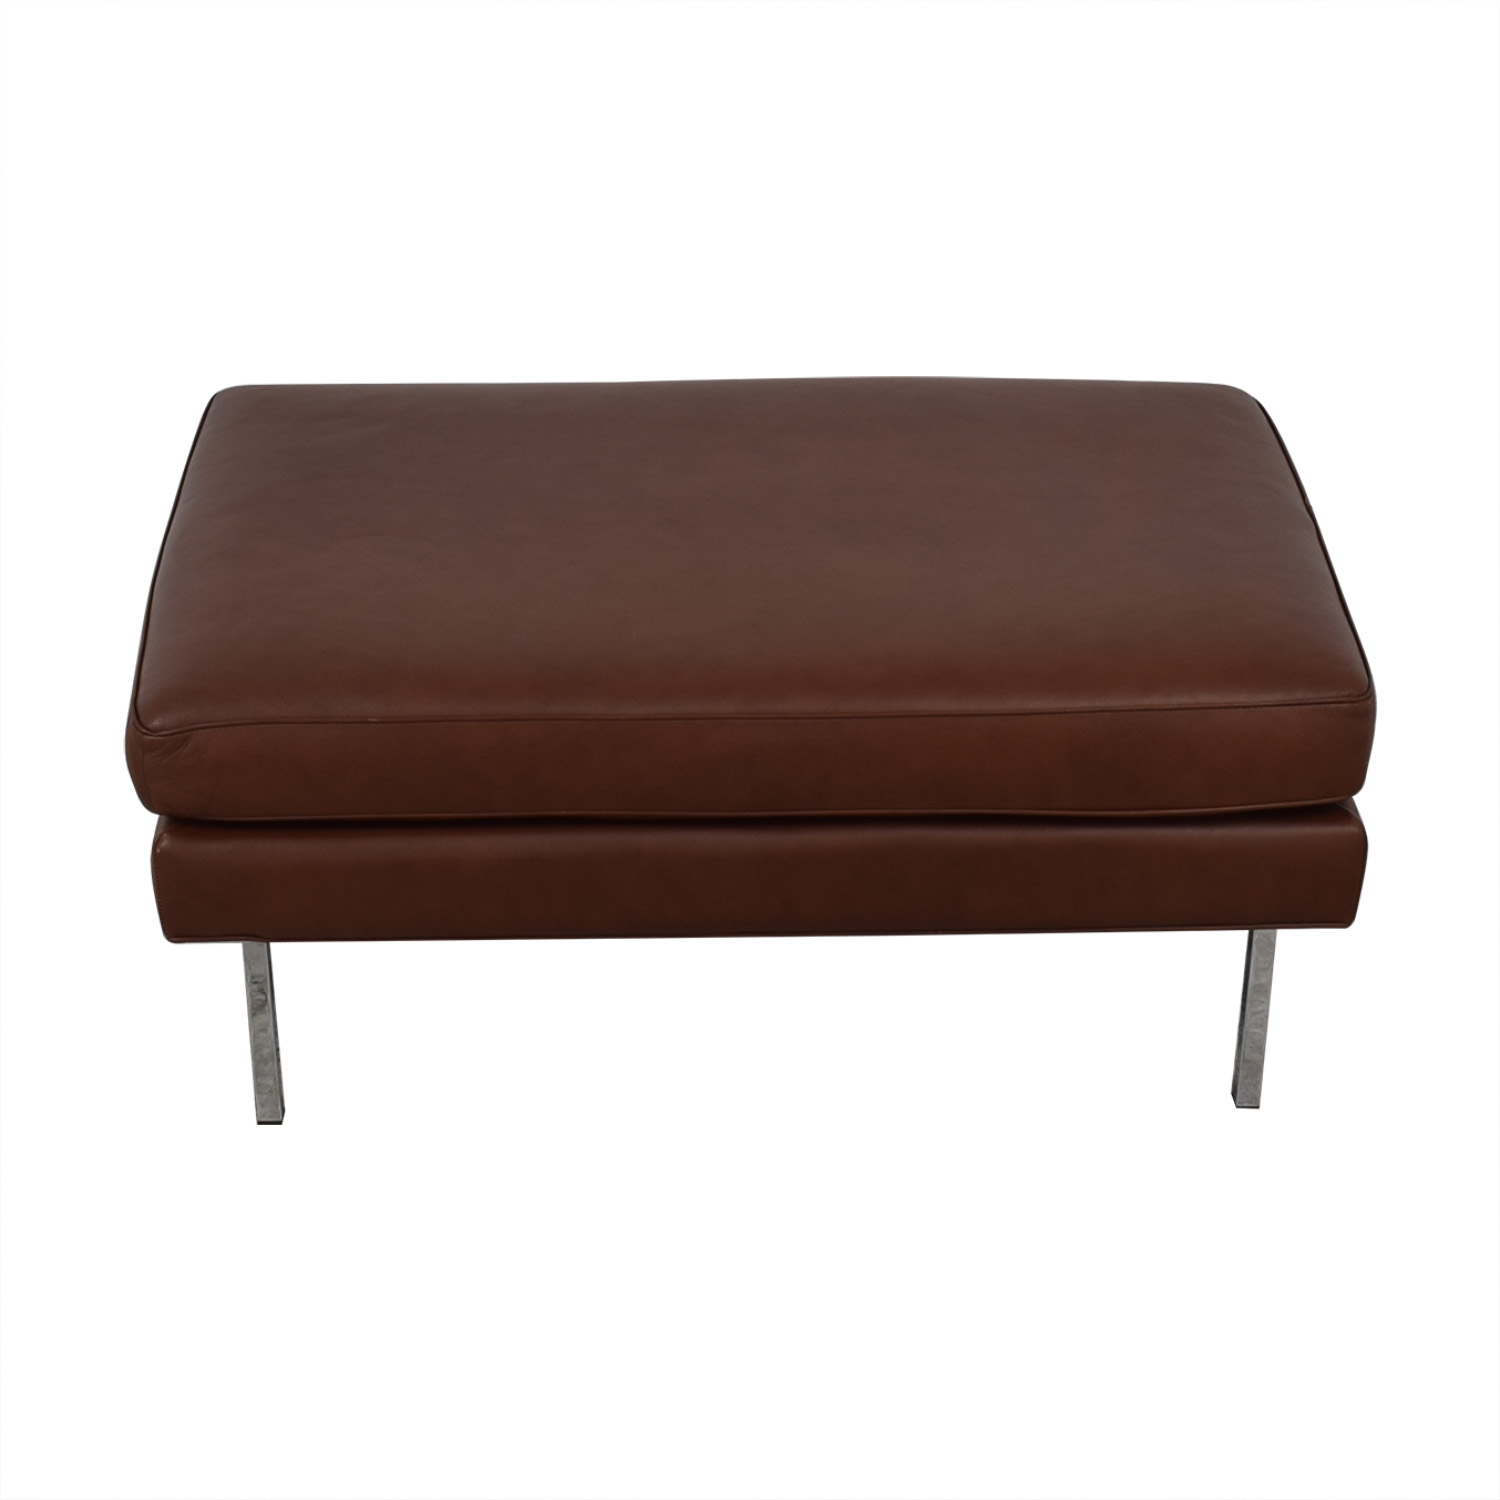 buy Design Within Reach Theatre Ottoman Leather Ottoman Design Within Reach